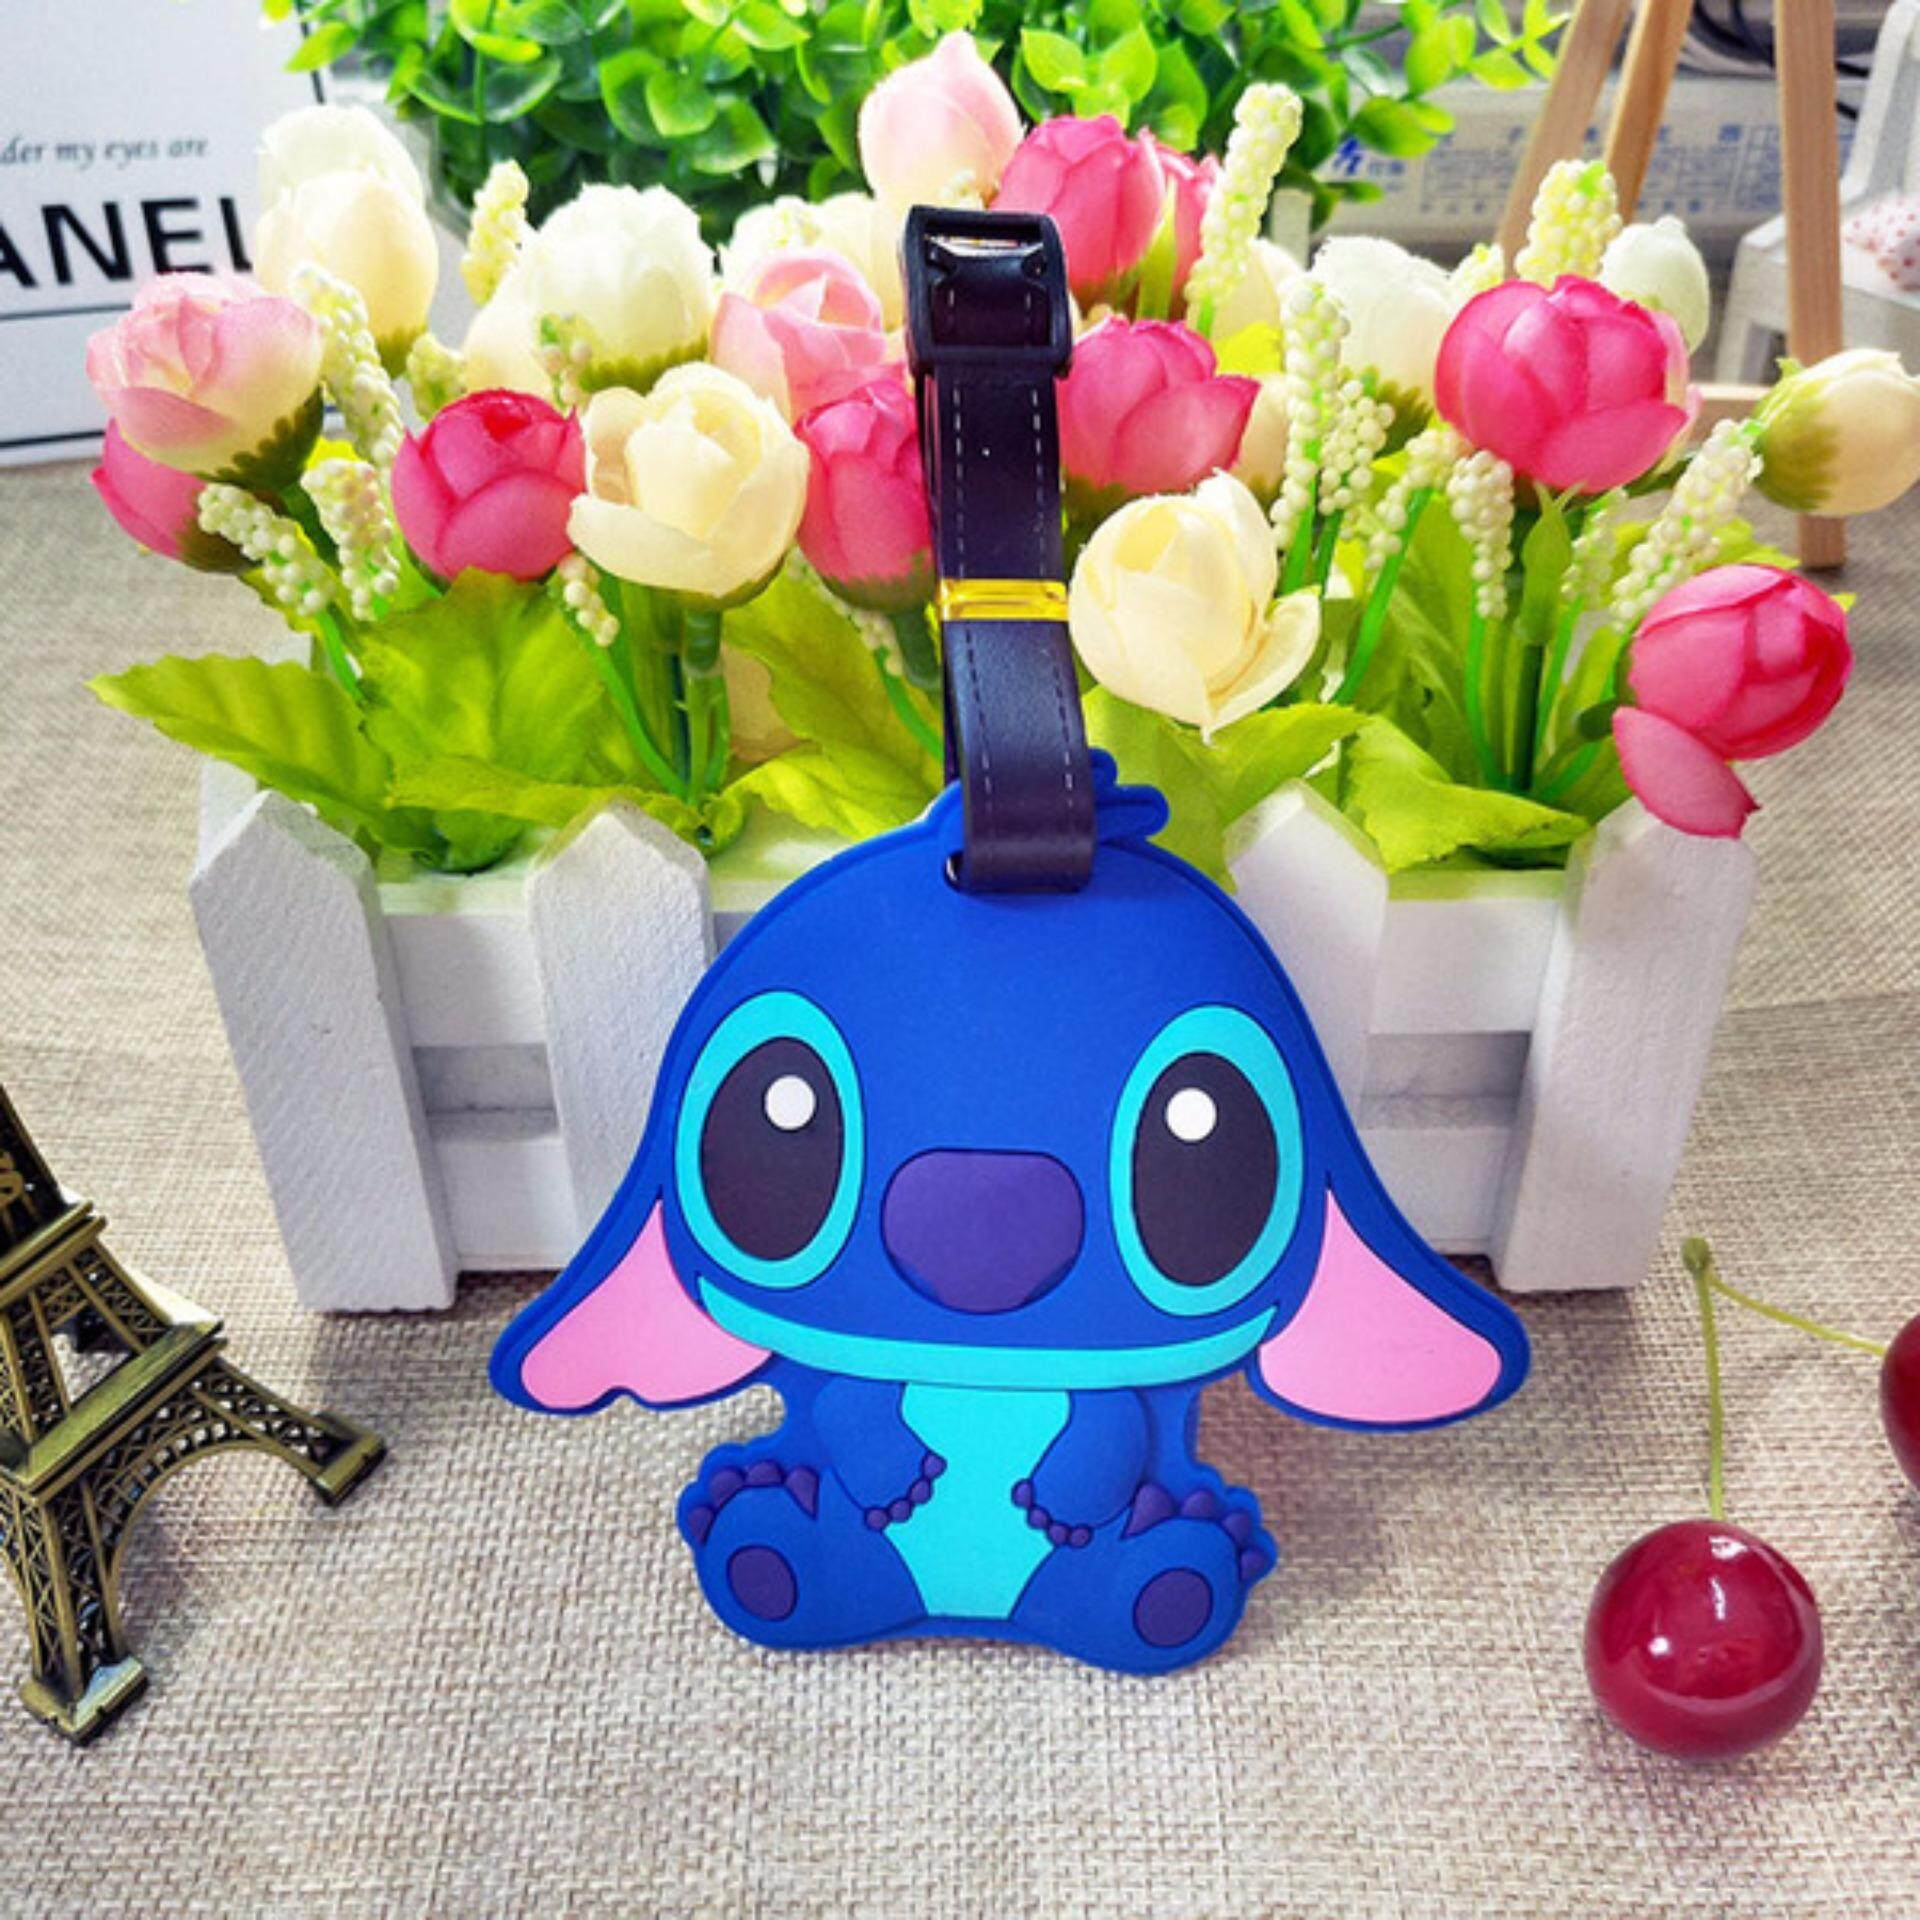 Luggage Tags Buy At Best Price In Malaysia Www Tag Pikachu Silicone Travel Baggage Bag Cartoon Stitch Blue